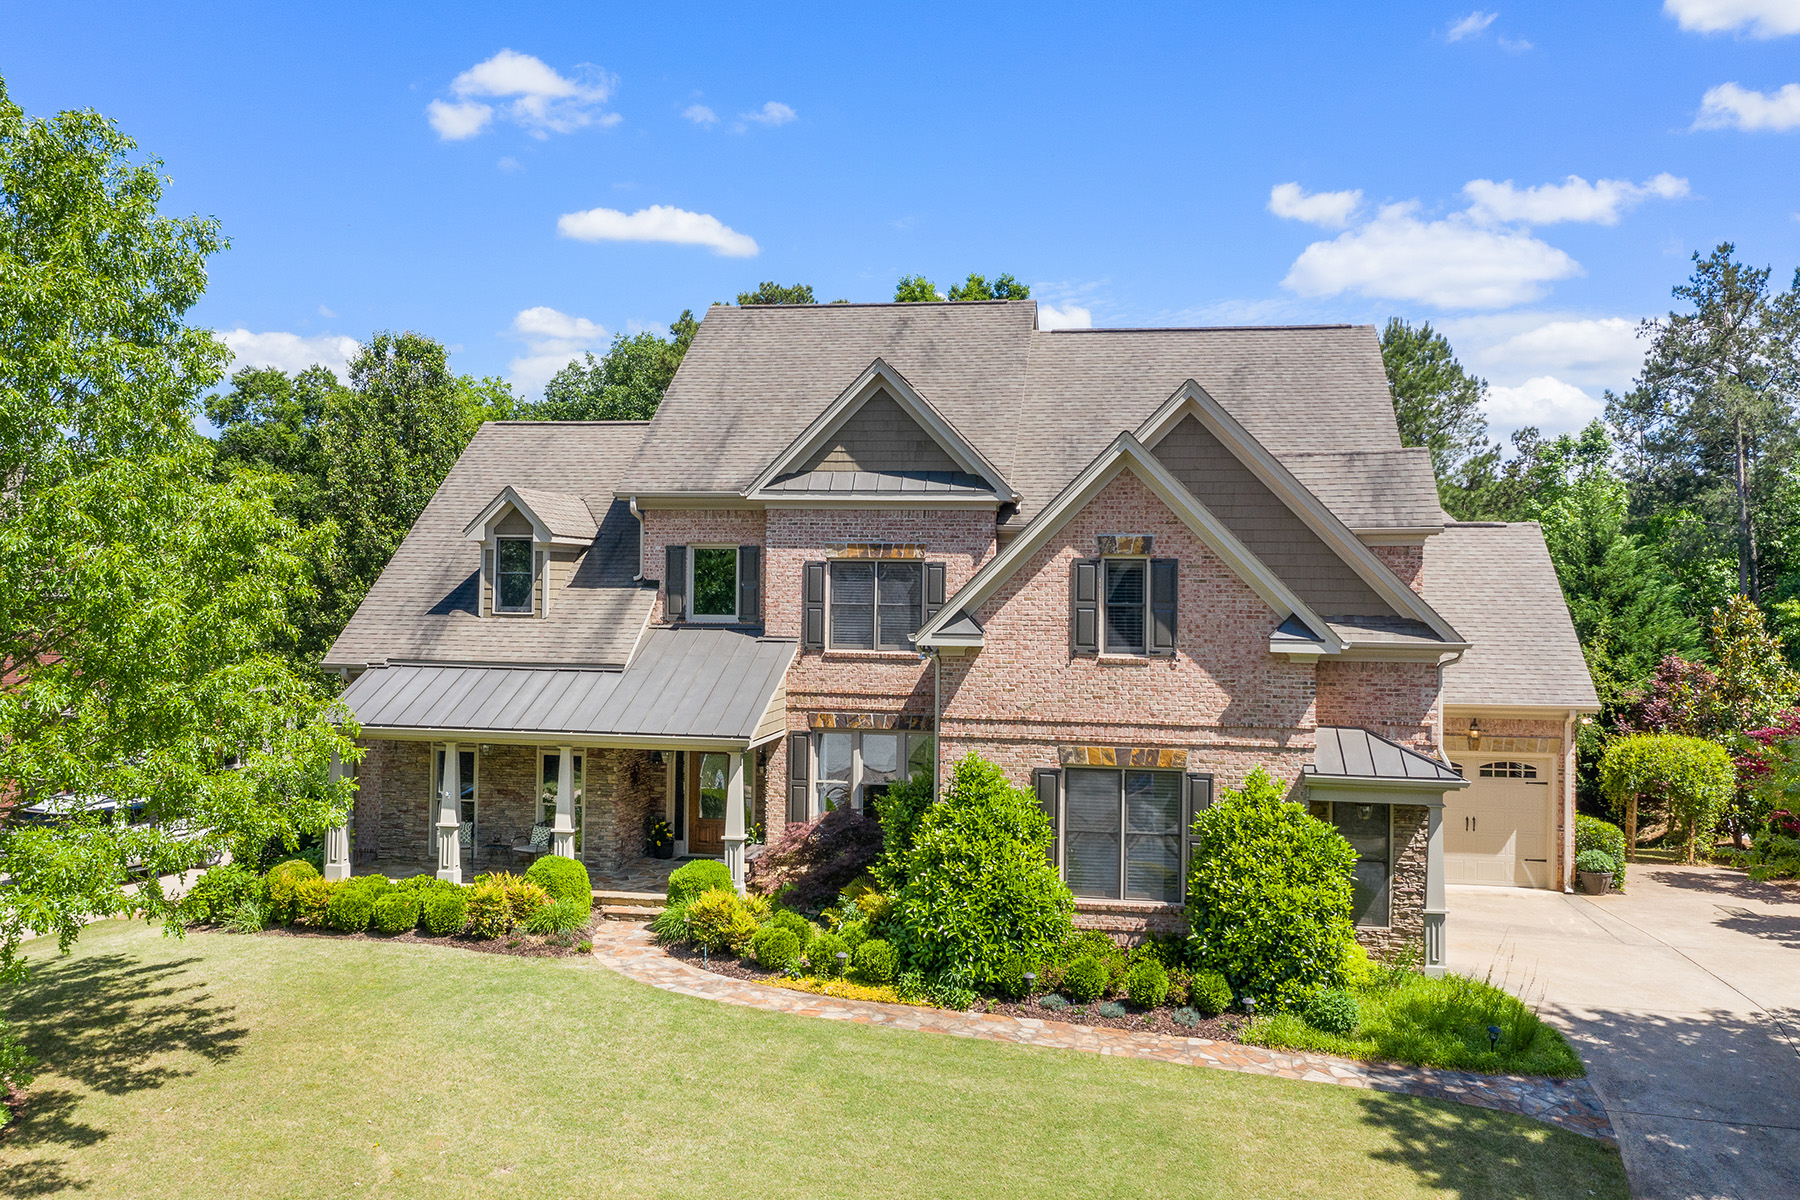 Single Family Homes for Sale at Golf Course Views and Country Club Lifestyle 1679 Fernstone Drive NW Acworth, Georgia 30101 United States